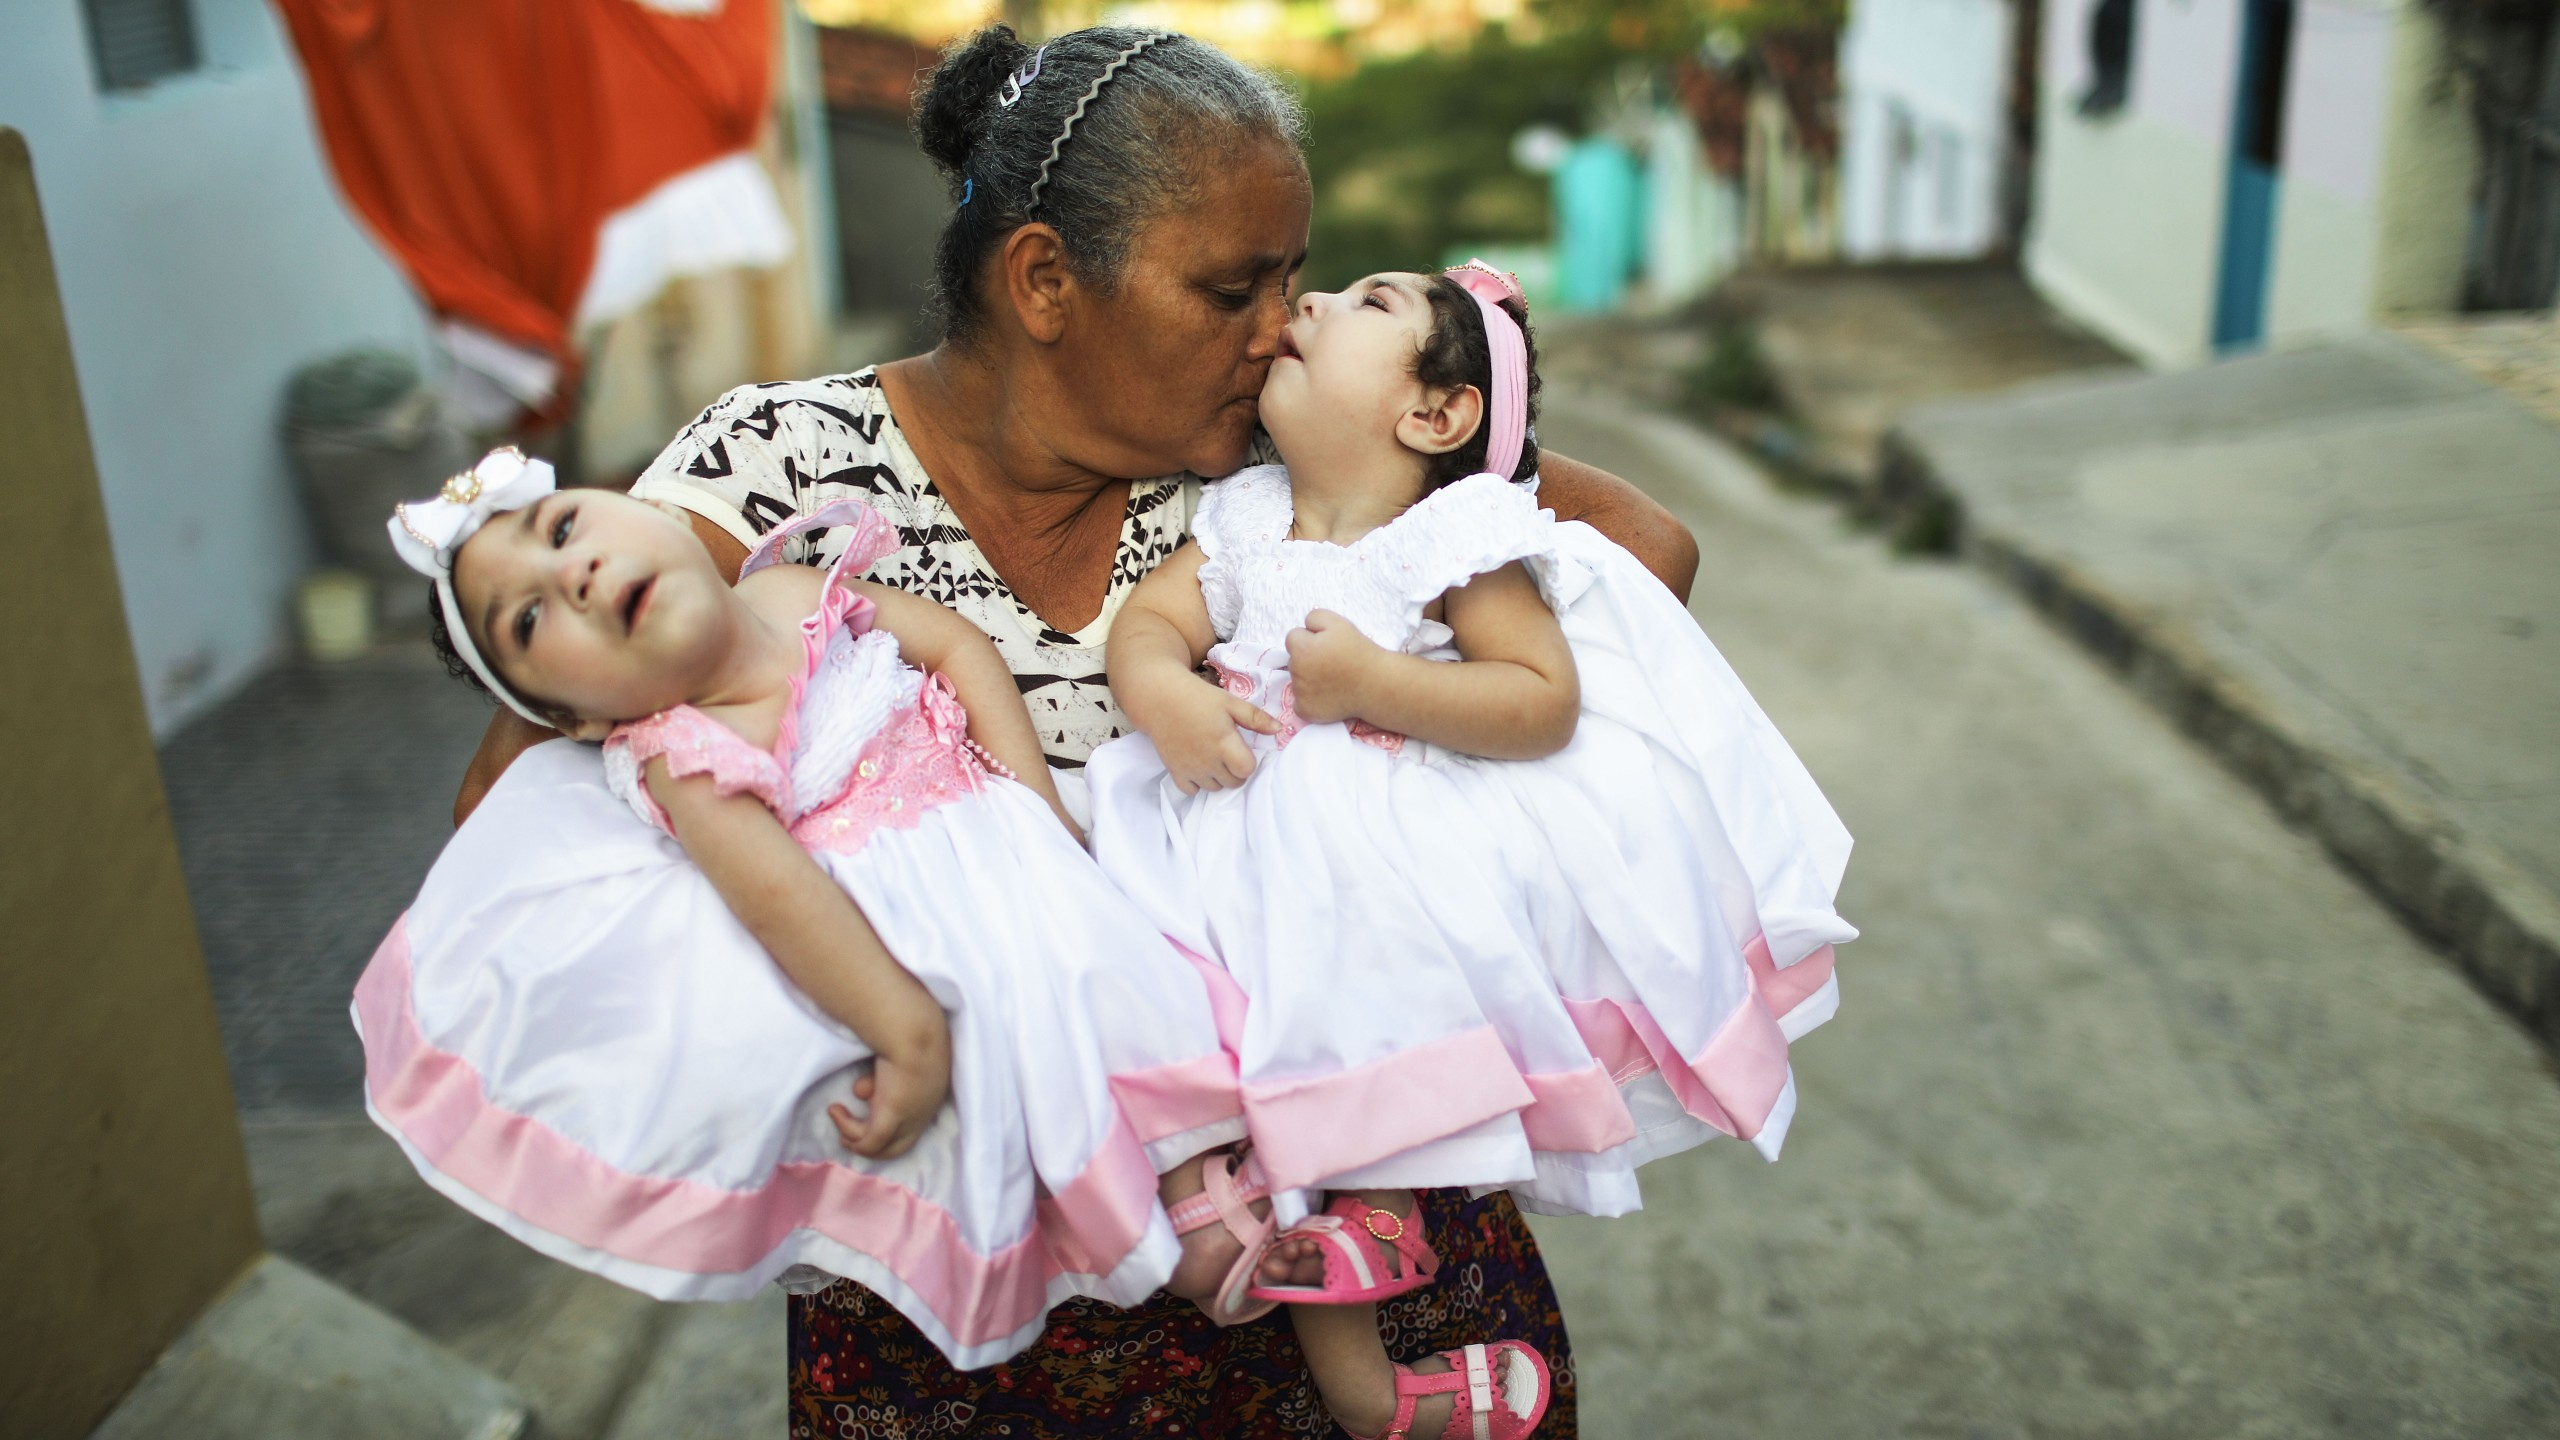 Grandmother Maria Jose holds her twin granddaughters Heloisa and Heloa Barbosa — both born with microcephaly after their mother contracted the Zika virus during pregnancy — outside of their house as they pose for photos at the twins' 1-year birthday party on April 16, 2017, in Areia, Brazil. (Credit: Mario Tama / Getty Images)